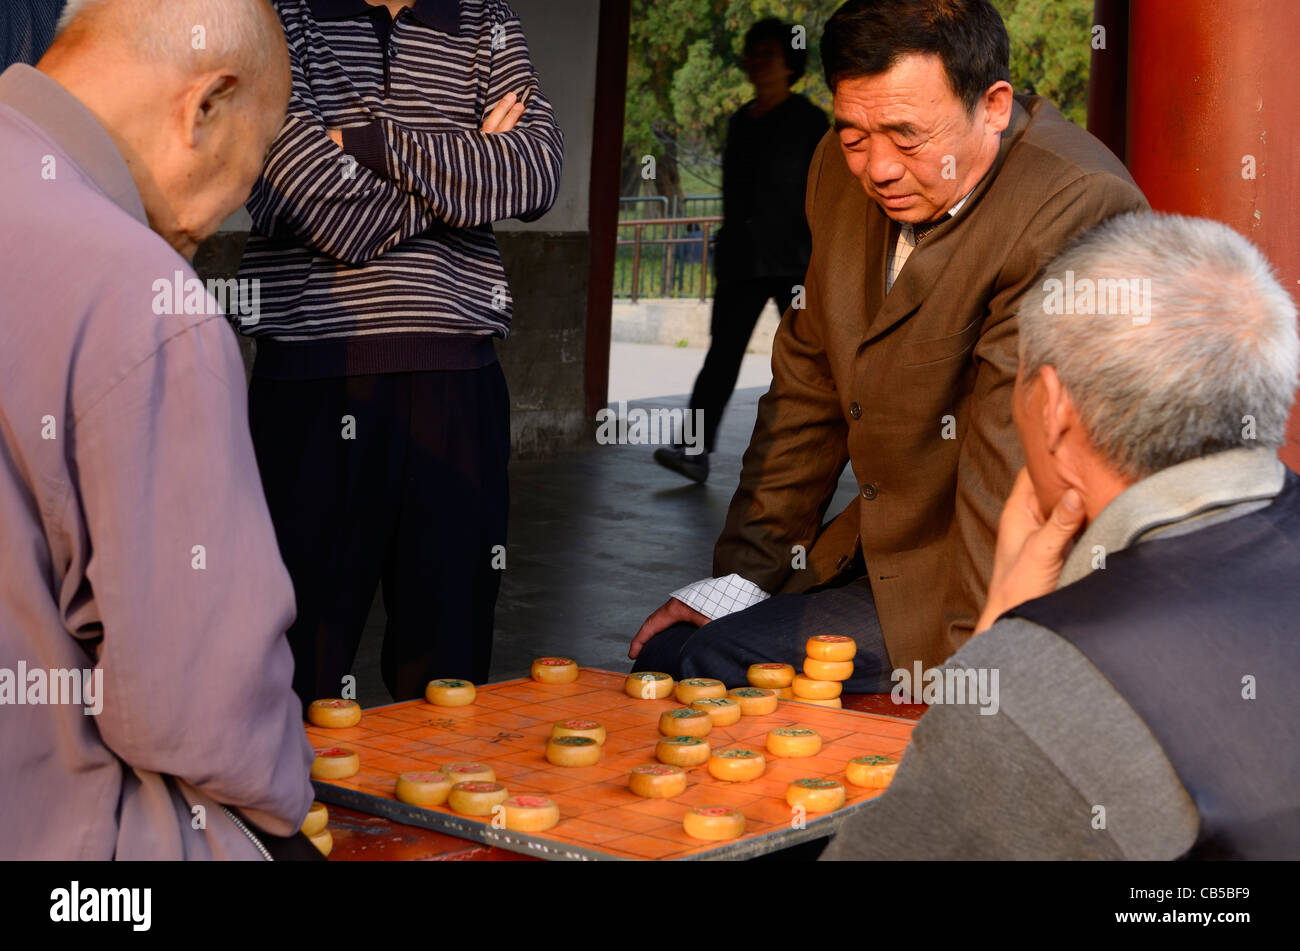 Group of men watching pair play Chinese Chess or Xiangqi in Beijing Peoples Republic of China - Stock Image